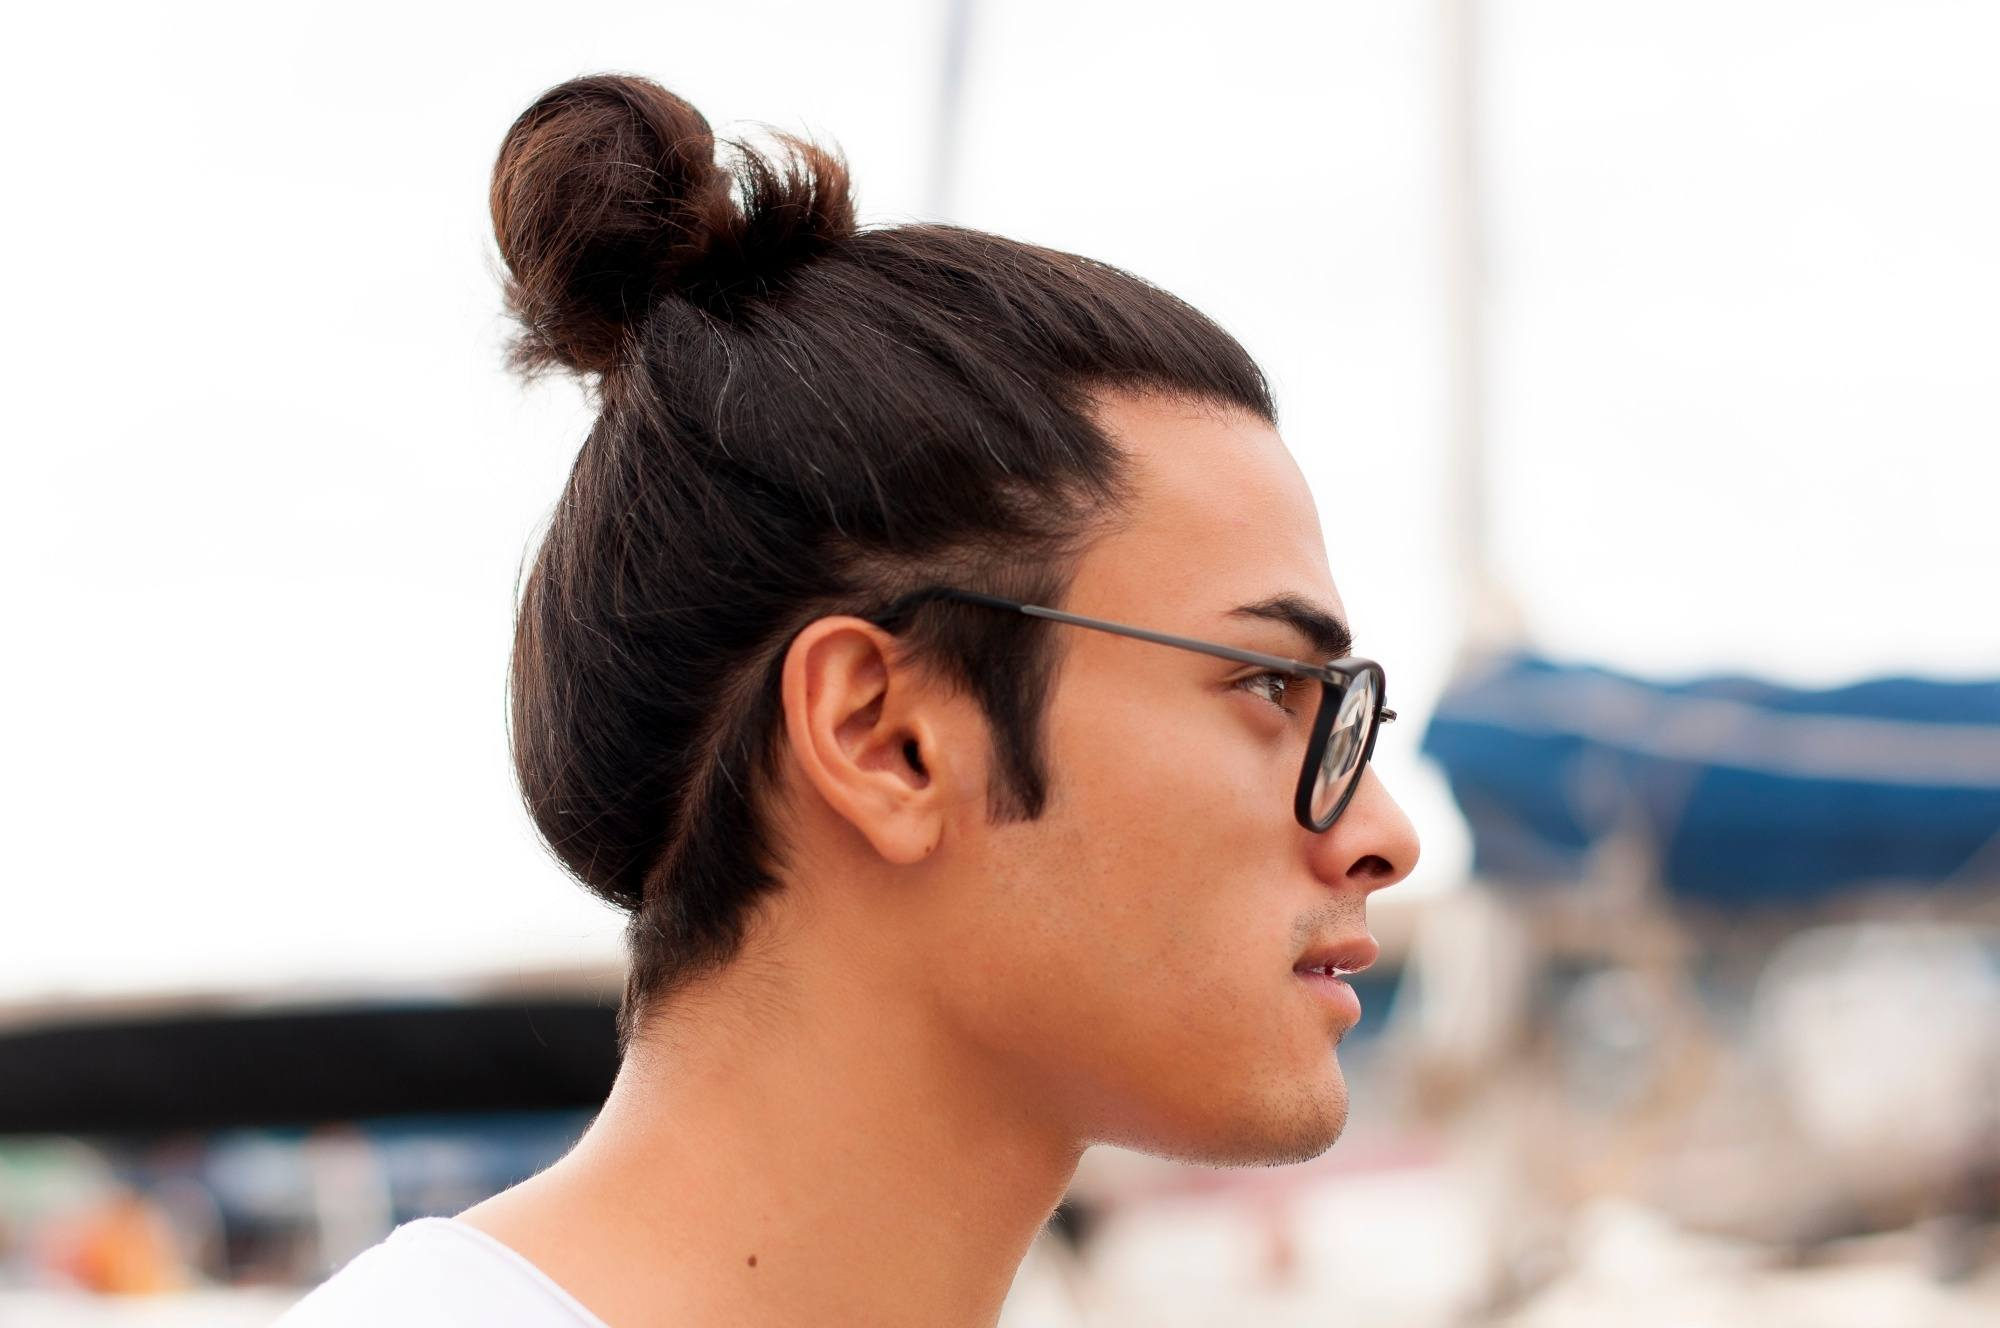 Fashion is always in flux, which can make it hard to stay up to date, but there's no time like the present to ditch long locks for a stylish new look. Man Bun Haircut Ideas For Pinoys All Things Hair Ph